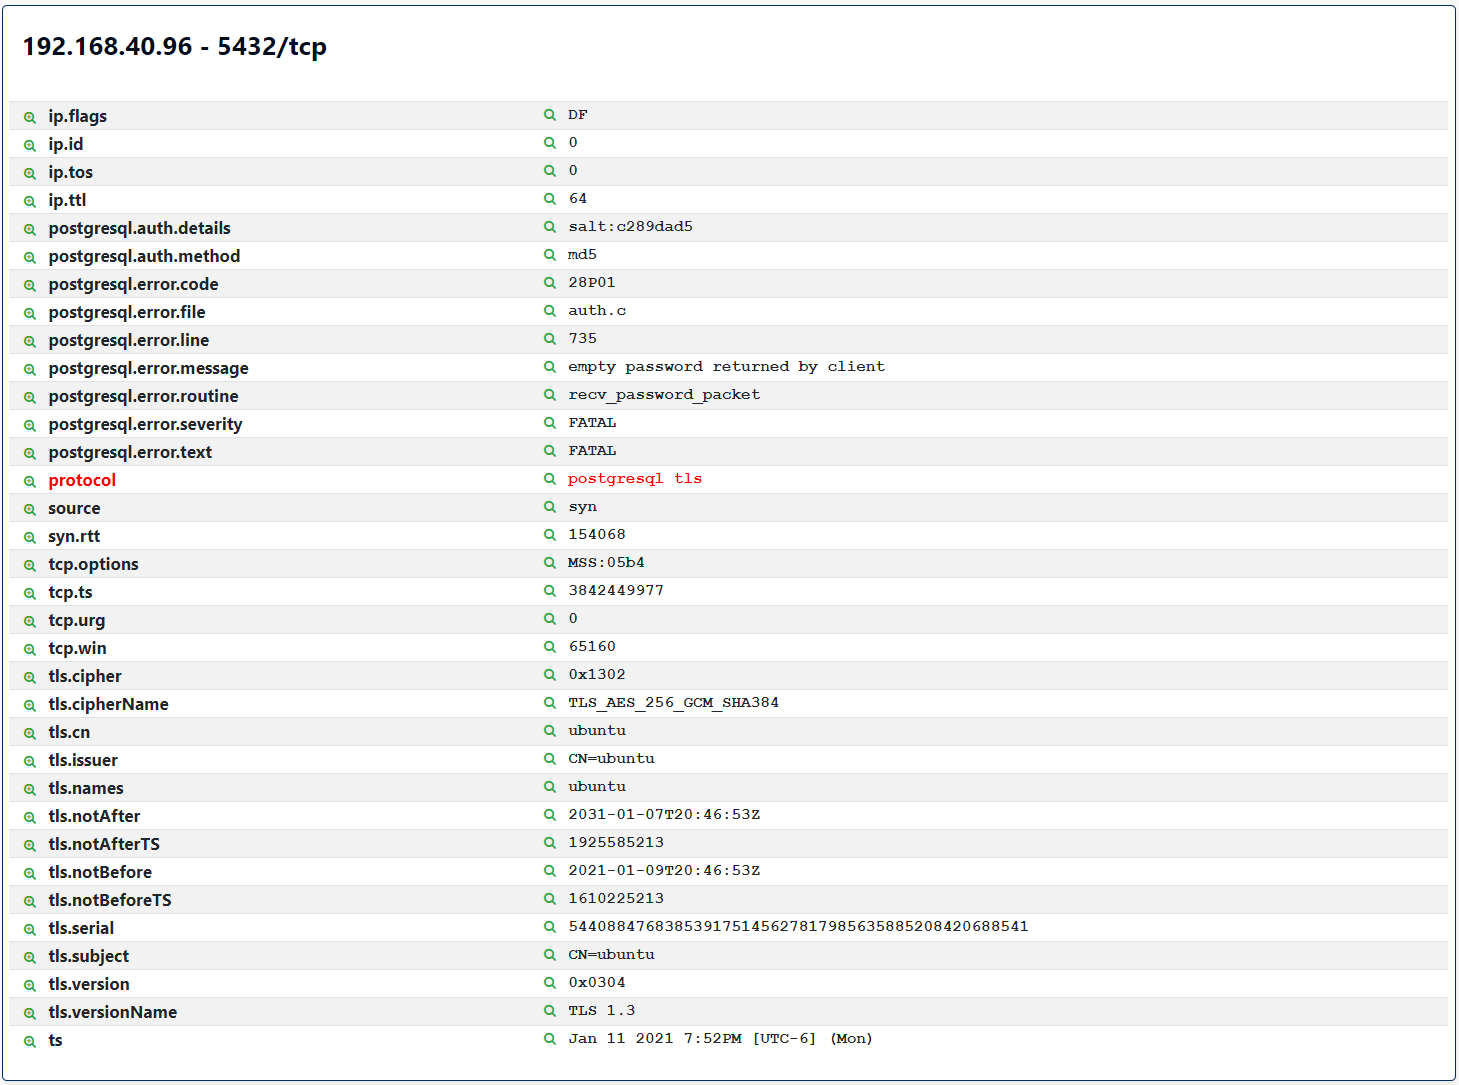 Screenshot of Rumble PostgreSQL TLS Attributes